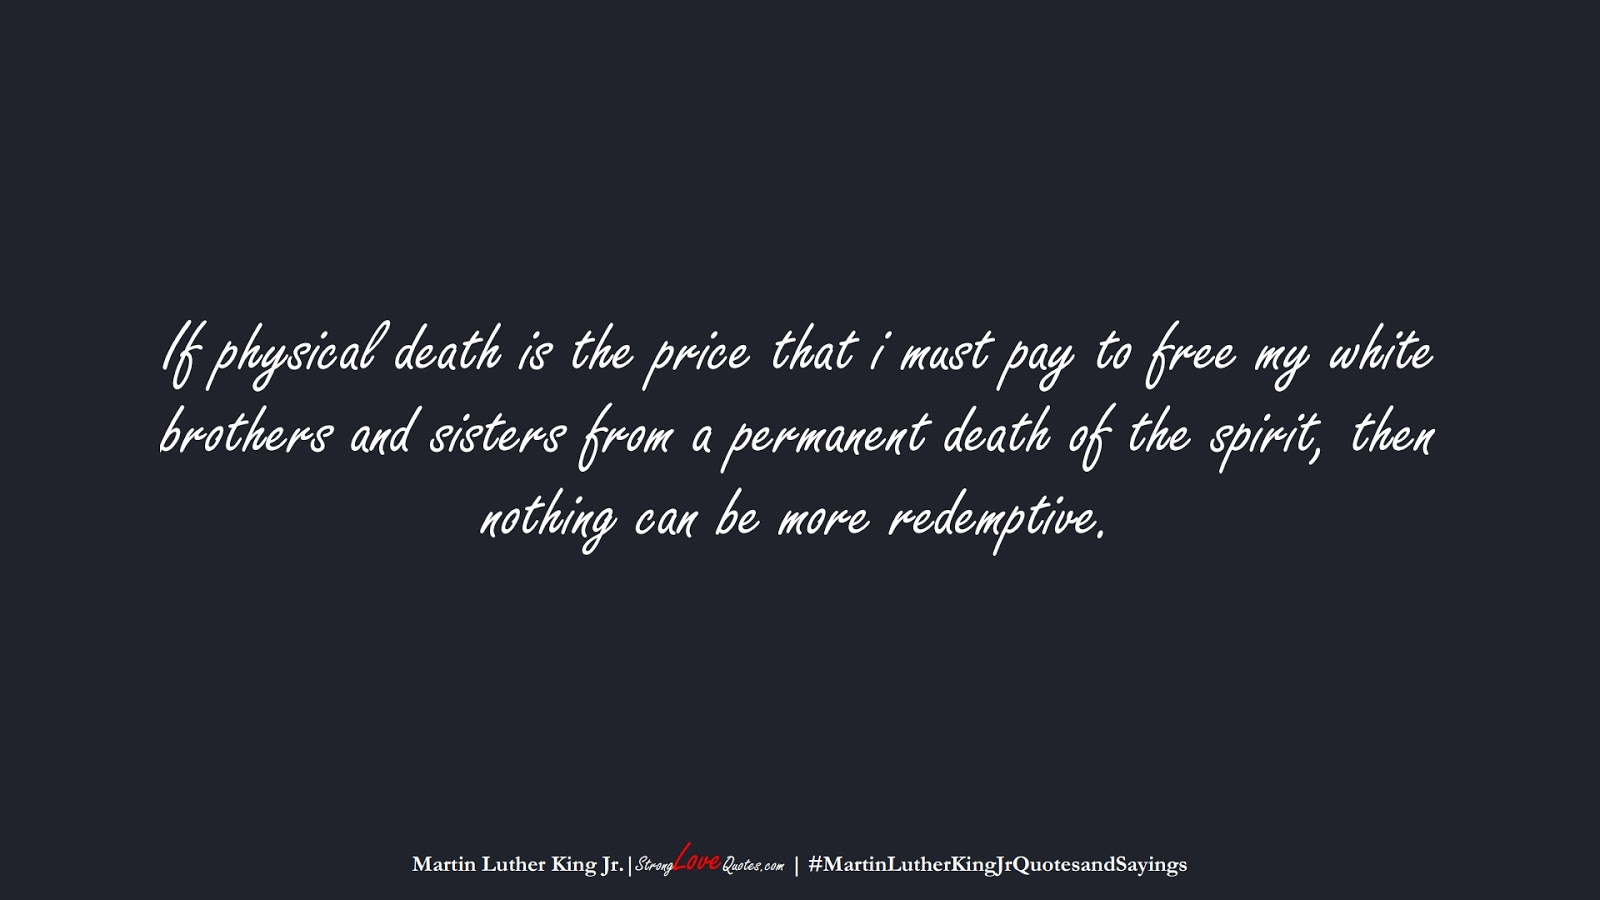 If physical death is the price that i must pay to free my white brothers and sisters from a permanent death of the spirit, then nothing can be more redemptive. (Martin Luther King Jr.);  #MartinLutherKingJrQuotesandSayings